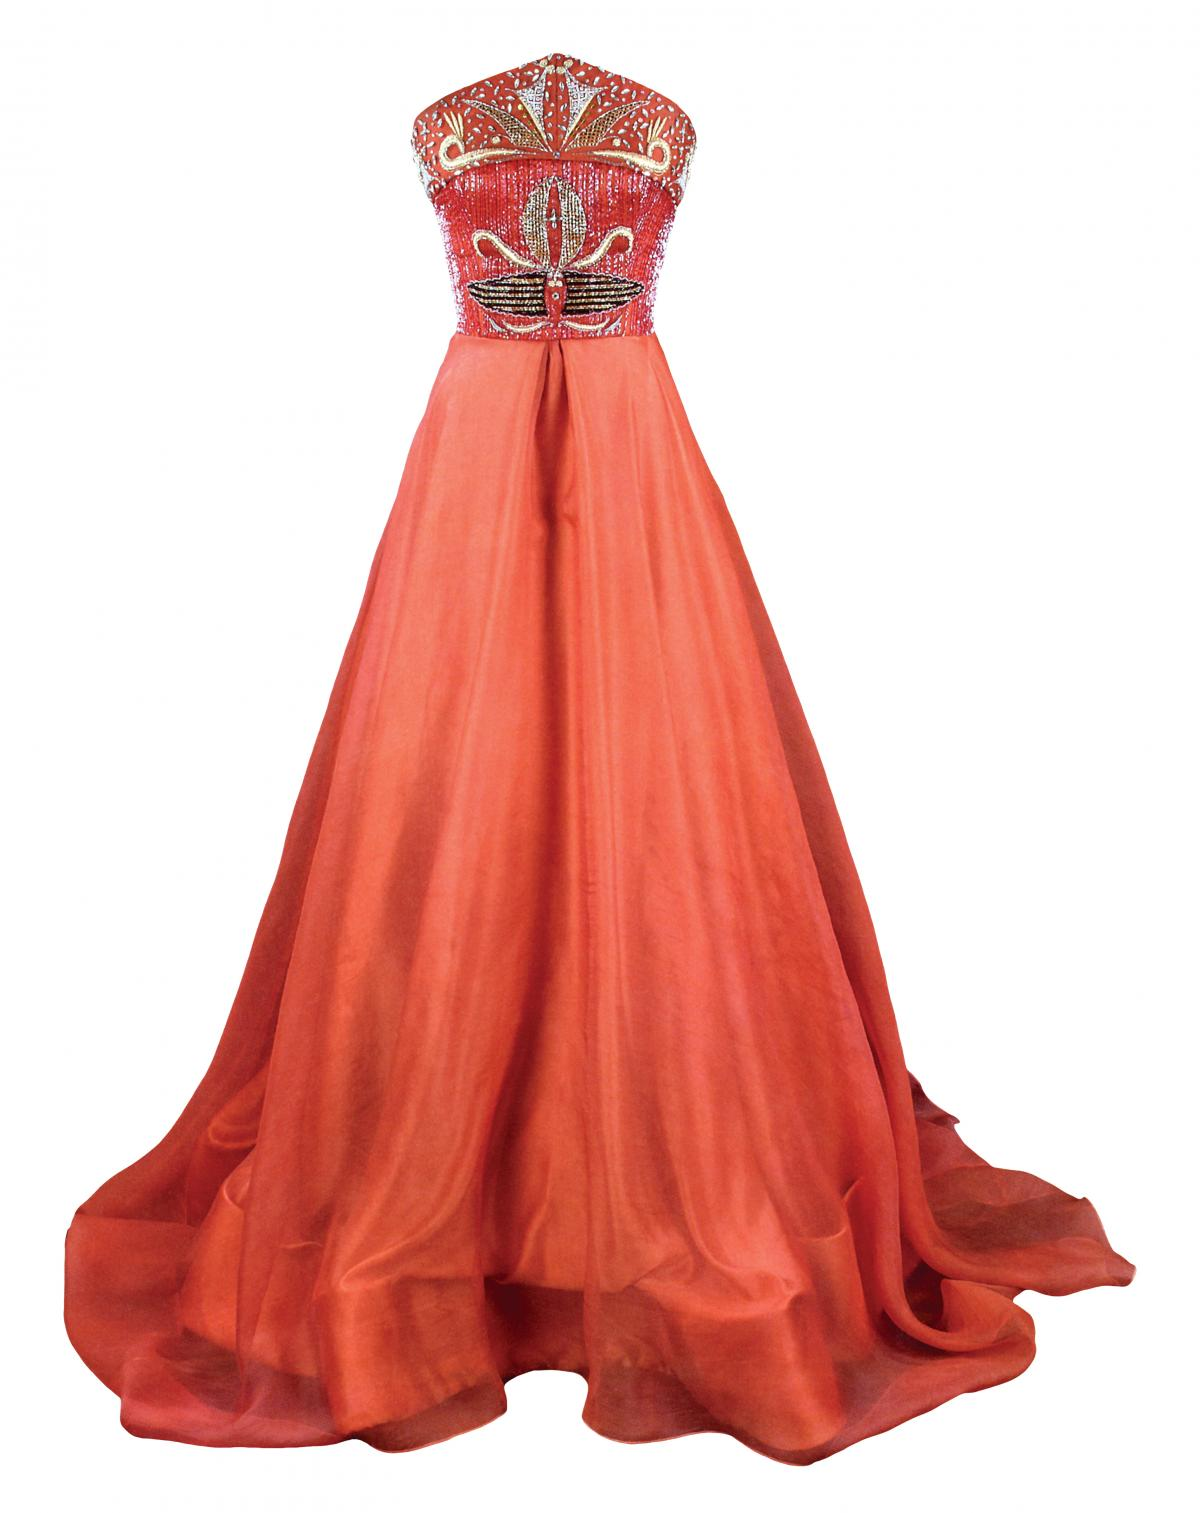 Full-length red evening gown with an a-line skirt and jeweled bodice